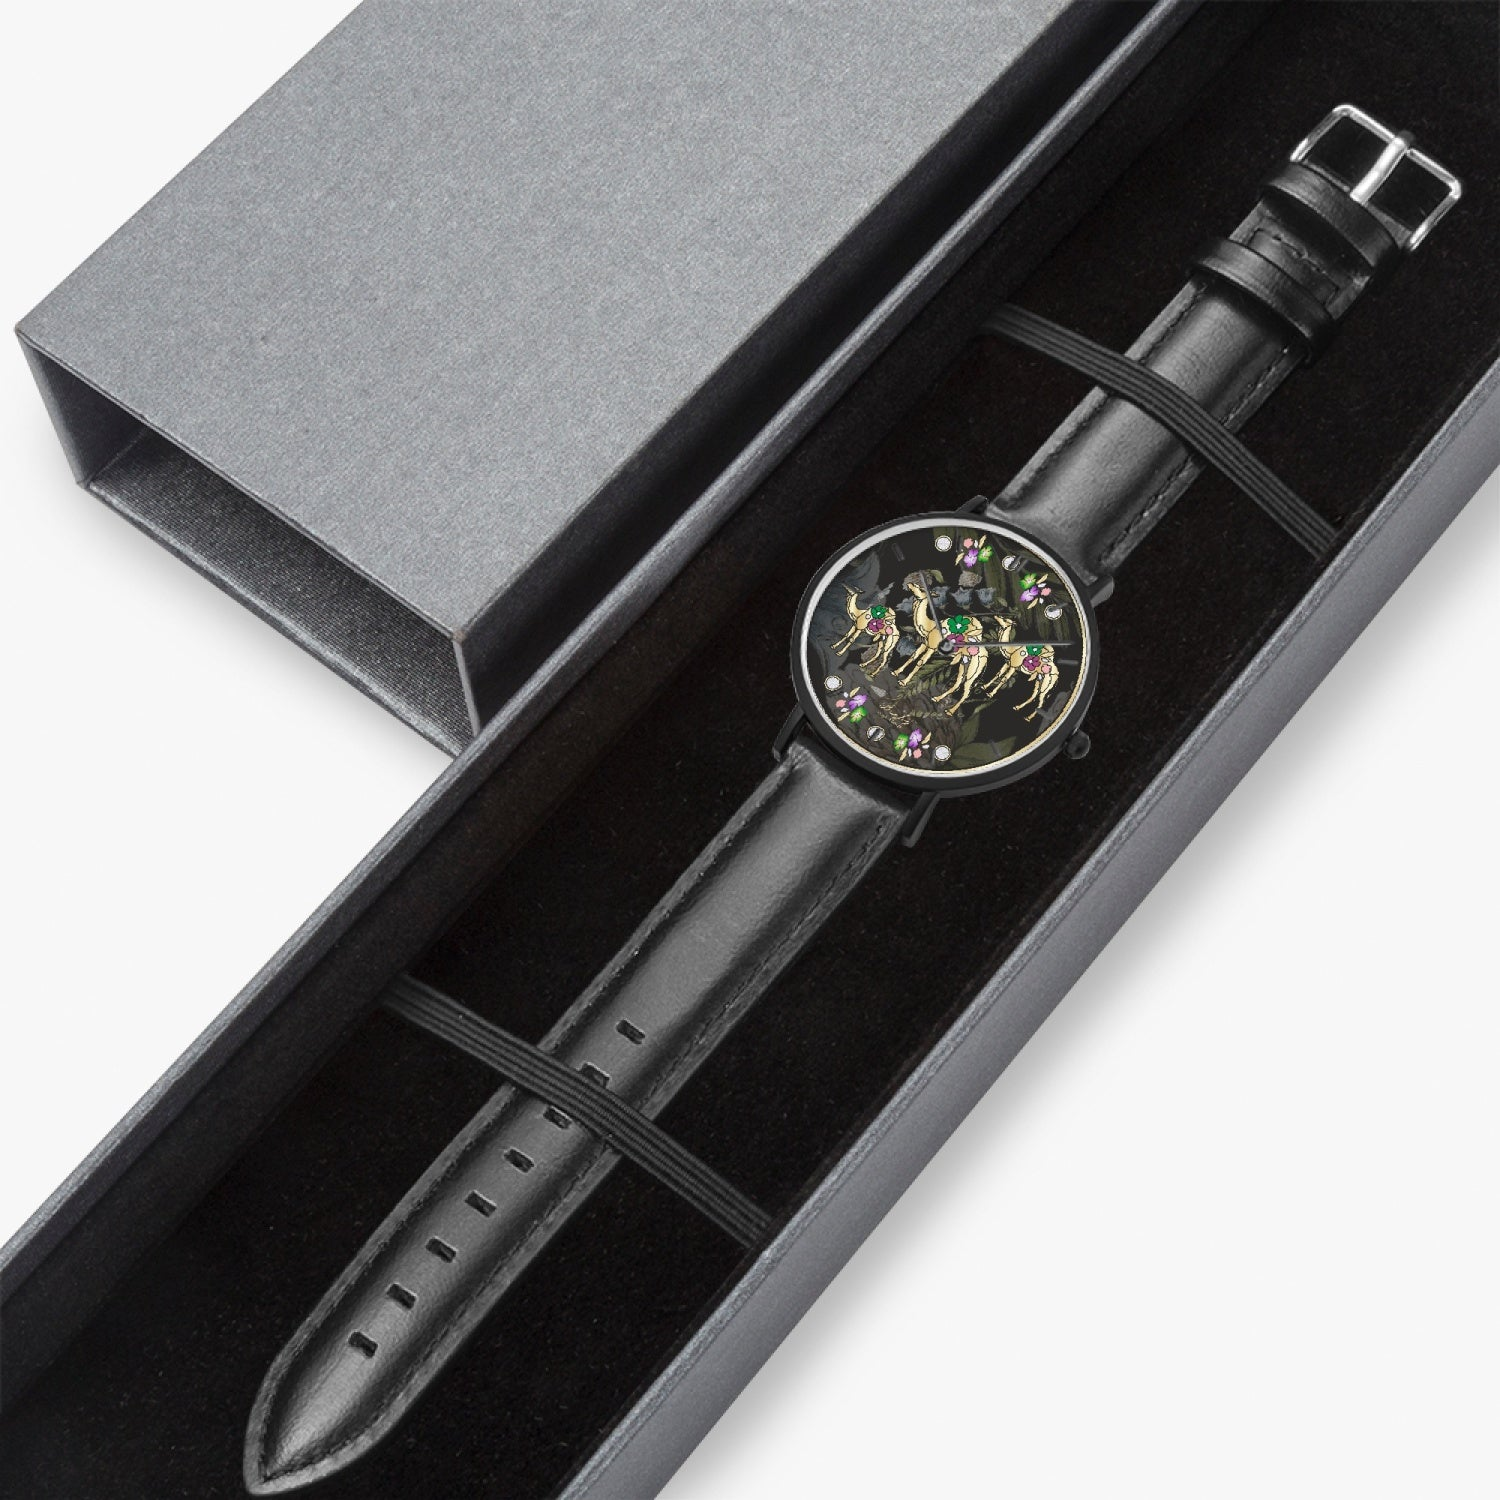 163. Hot Selling Ultra-Thin Leather Strap Quartz Watch (Black With Indicators)